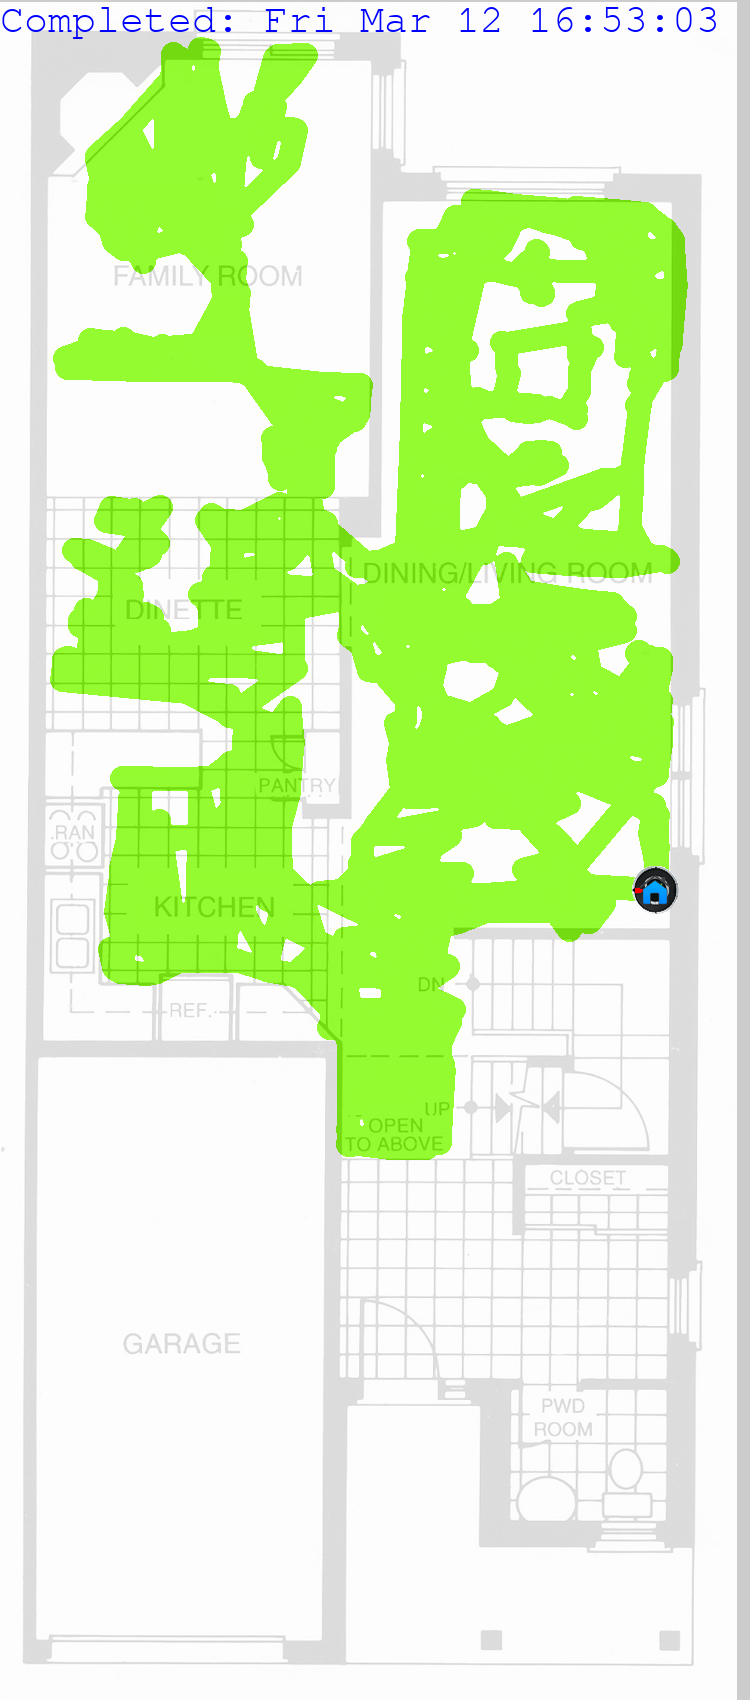 iRobot Roomba 980 cleaning map using python980 lib